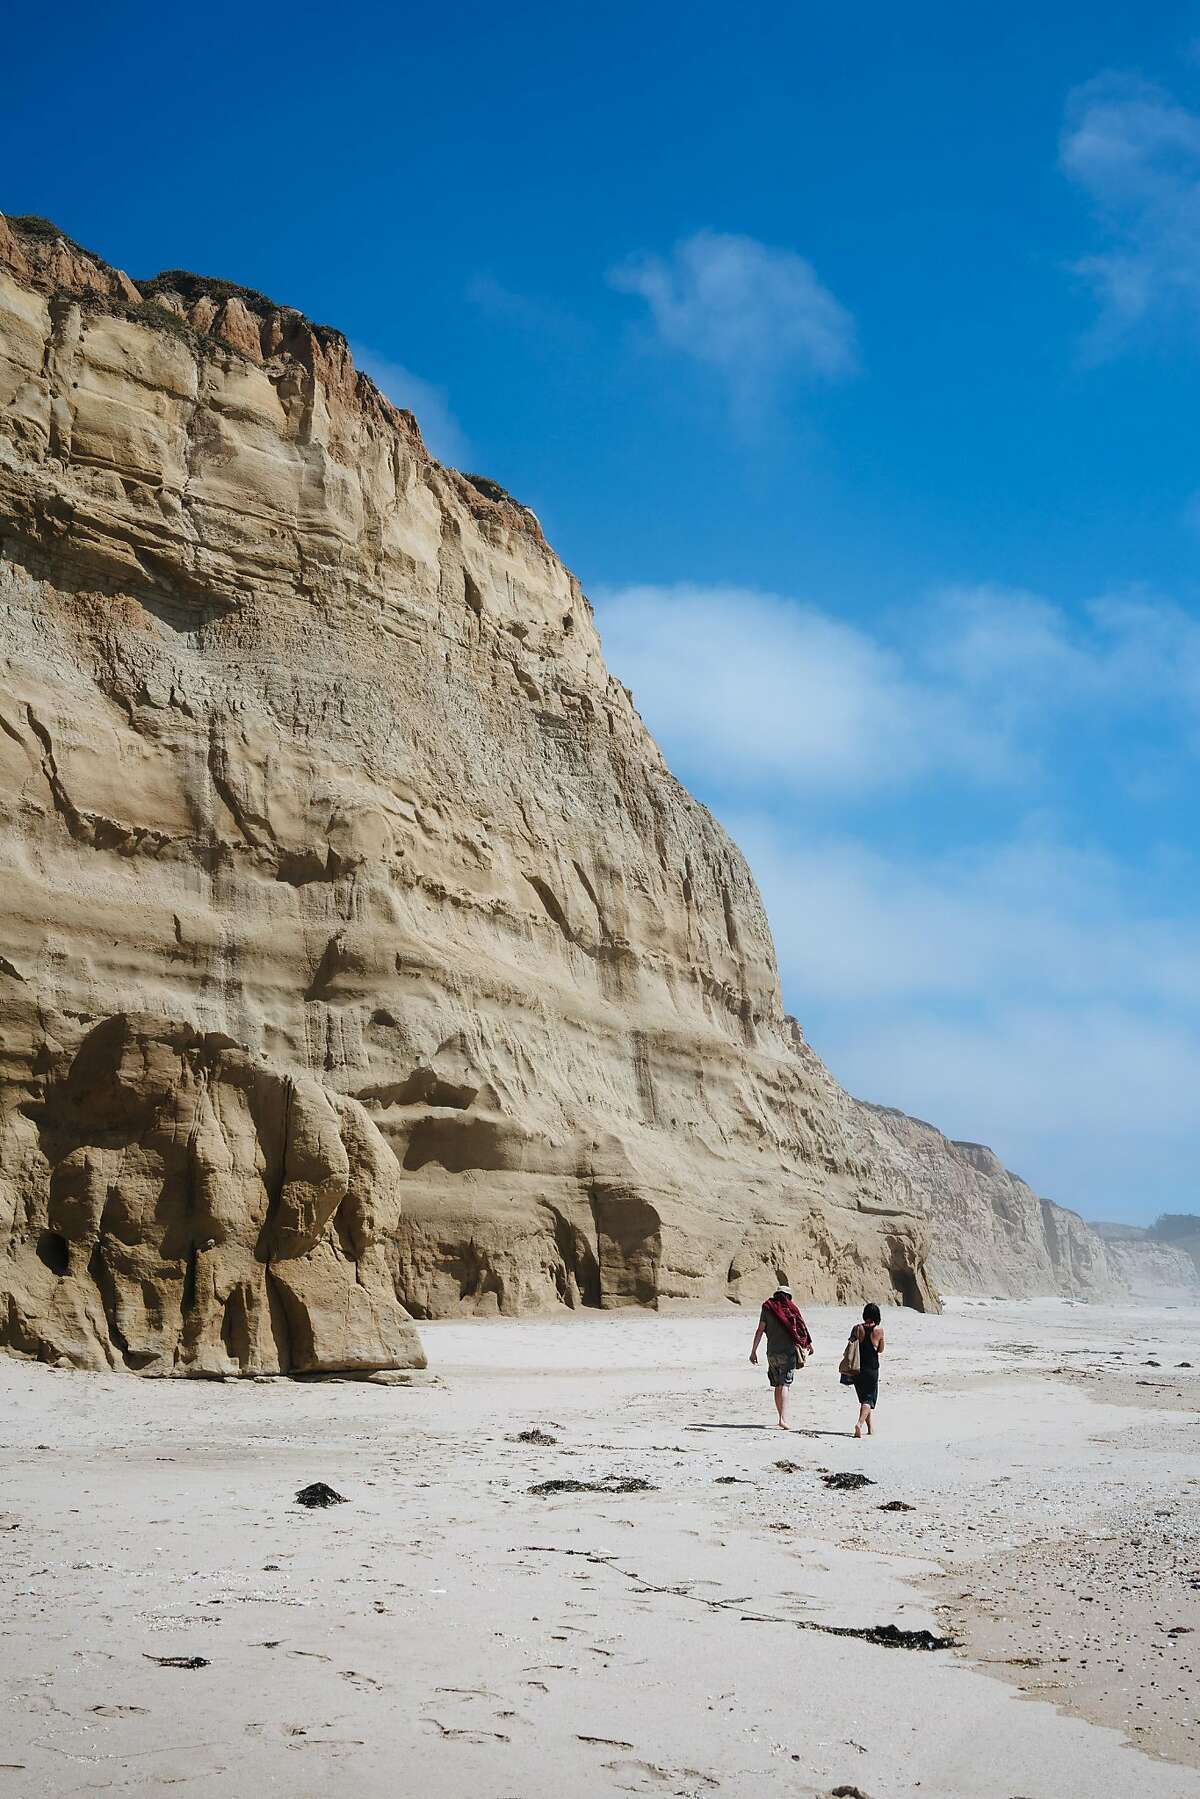 Long Gulch beach photographed in Half Moon Bay, Calif., on Friday, July 6, 2018.